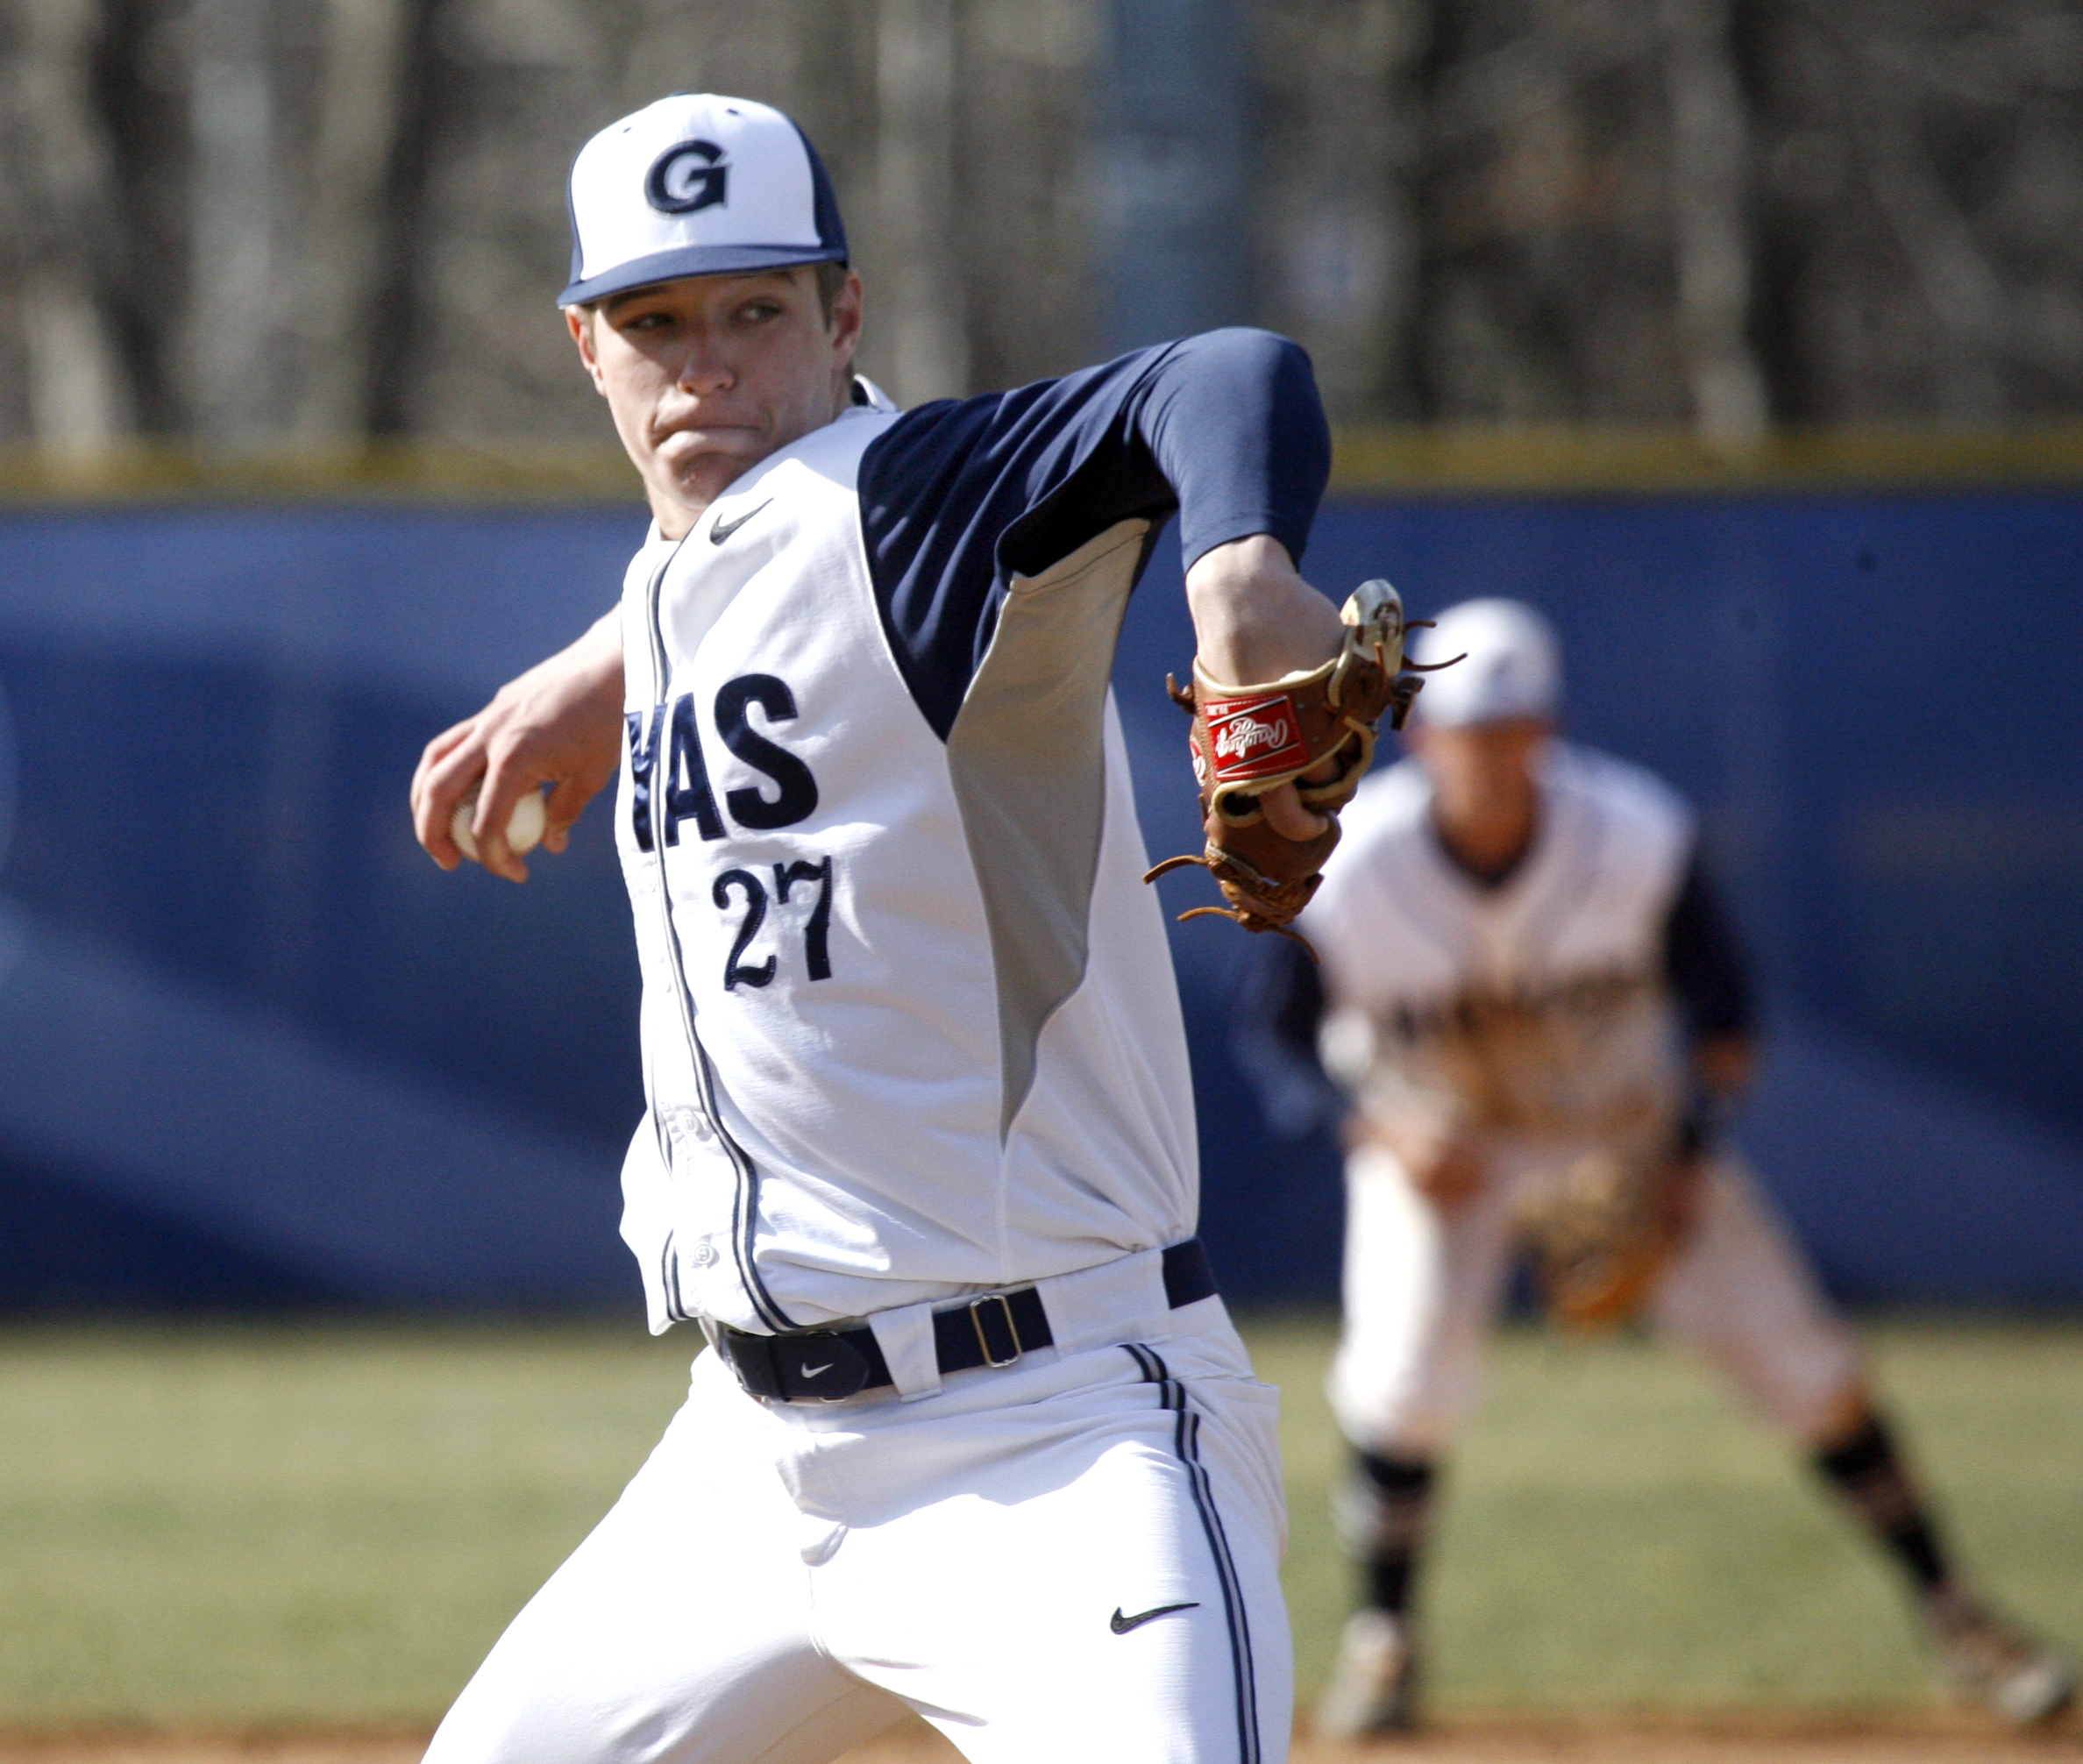 Matt Smith was selected to the BIG EAST Honor Roll for the second consecutive week.